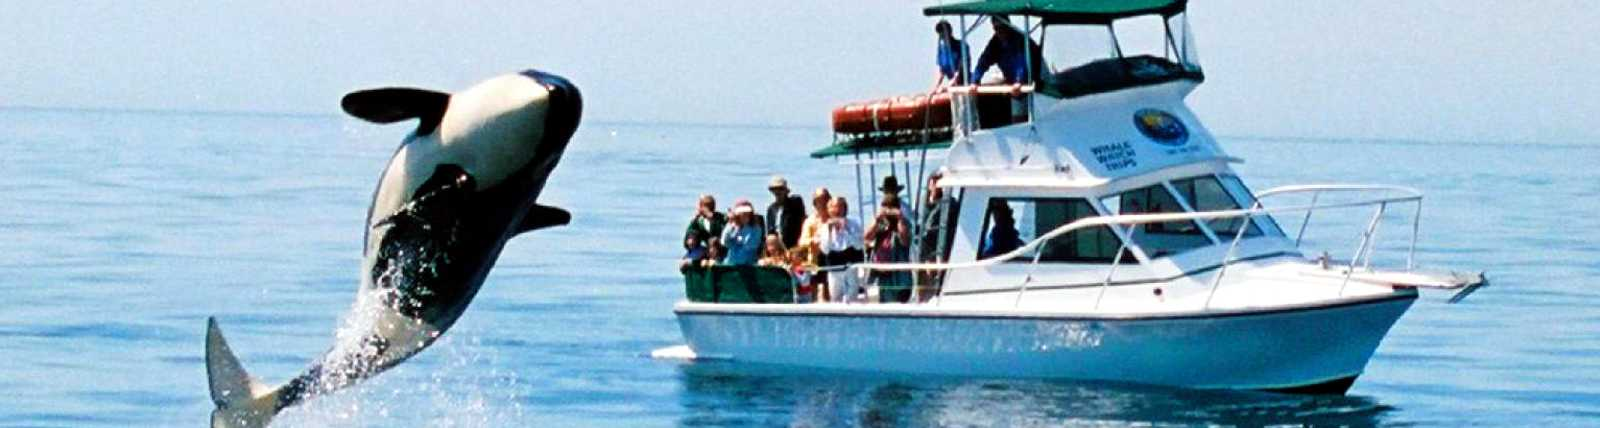 San_Juan_Safaris_Whale_Watching.jpg